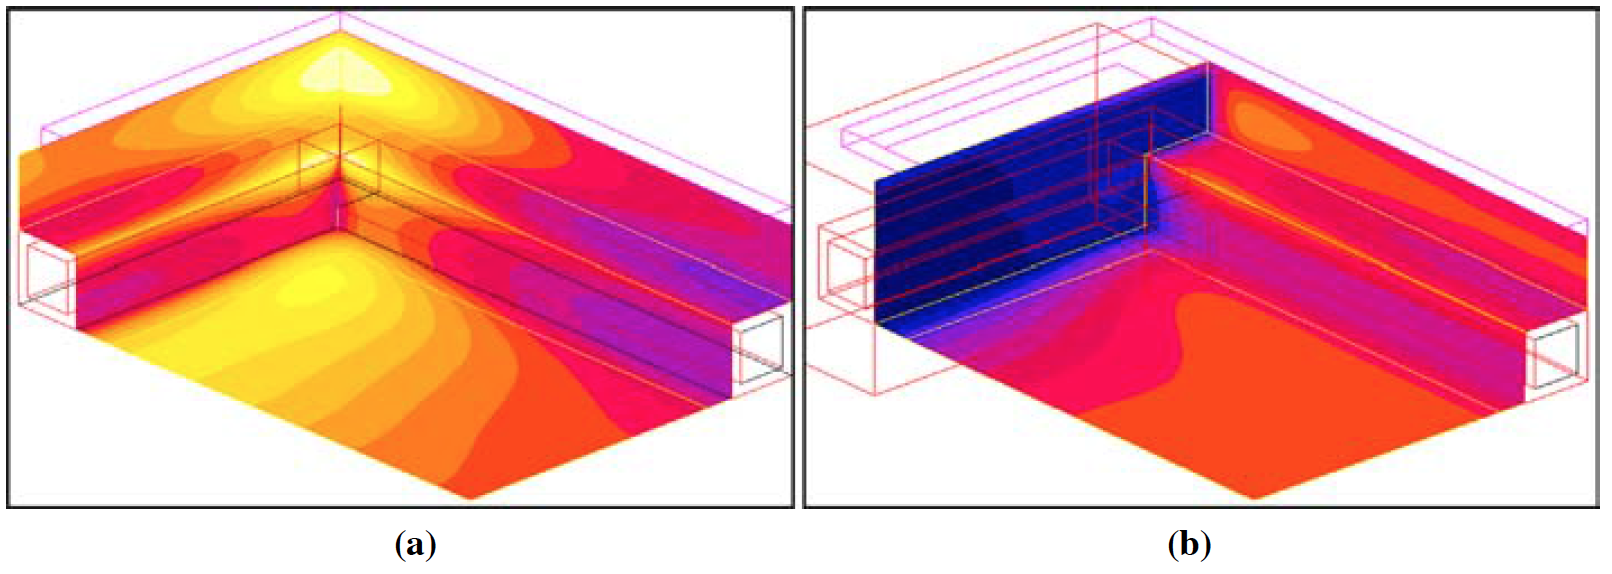 Fluxtrol | Design of Induction Coil For Generating Magnetic Field For Cancer Hyperthermia Research - Figure 8: Flux 3D thermal simulation of the concentrator using oriented pieces of Fluxtrol 75 with uniform winding size (a) and with the cross-over leg widened (b)